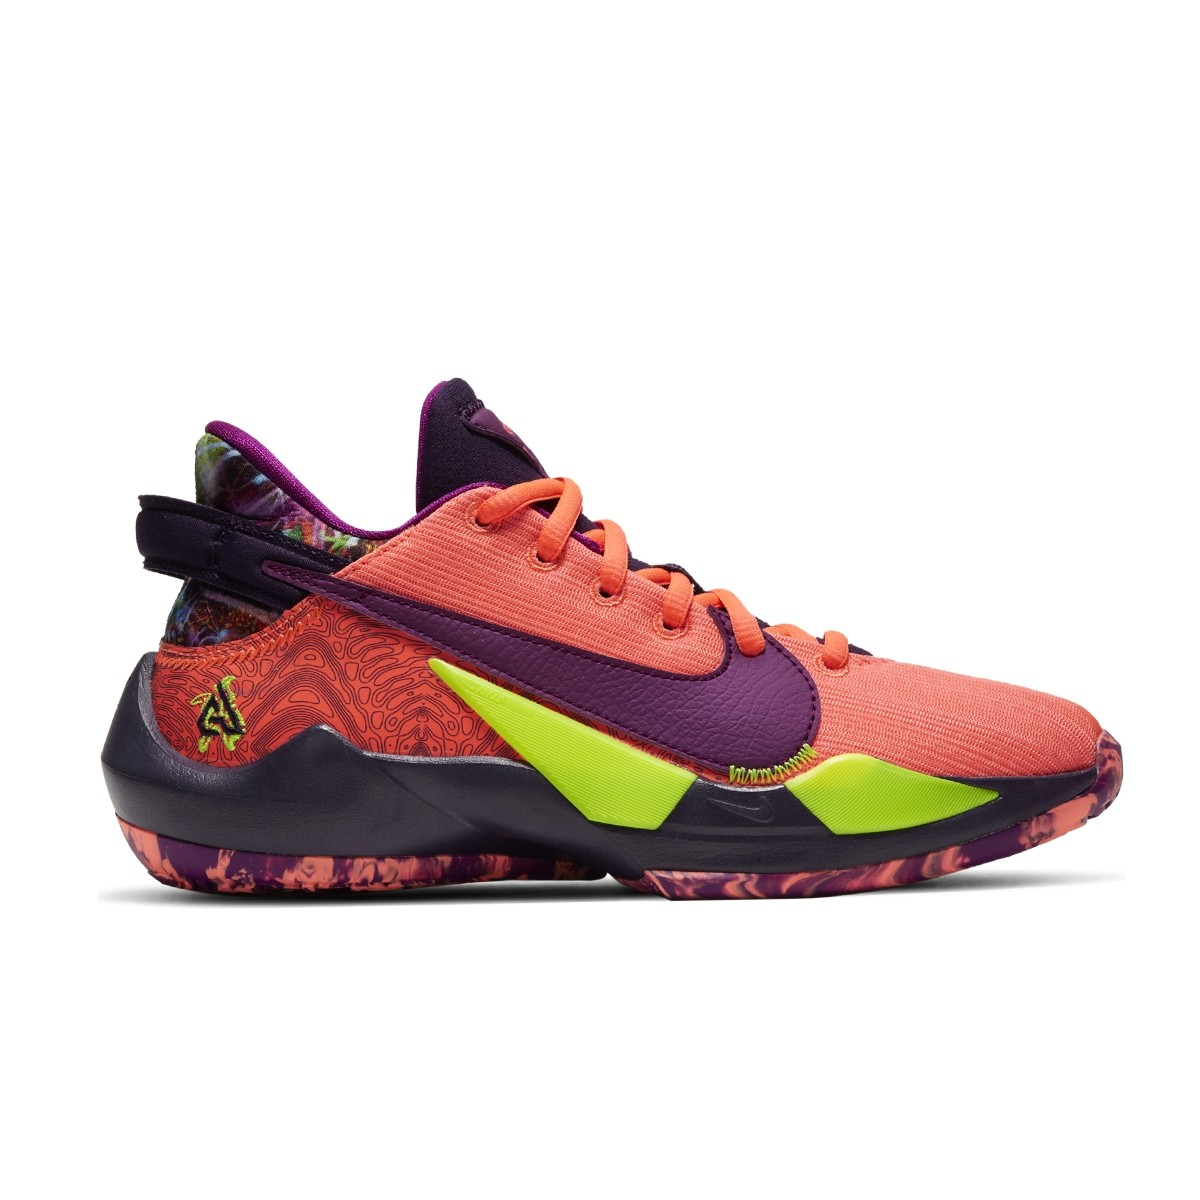 Nike Zoom Freak 2 Jr 'Bright Mango'